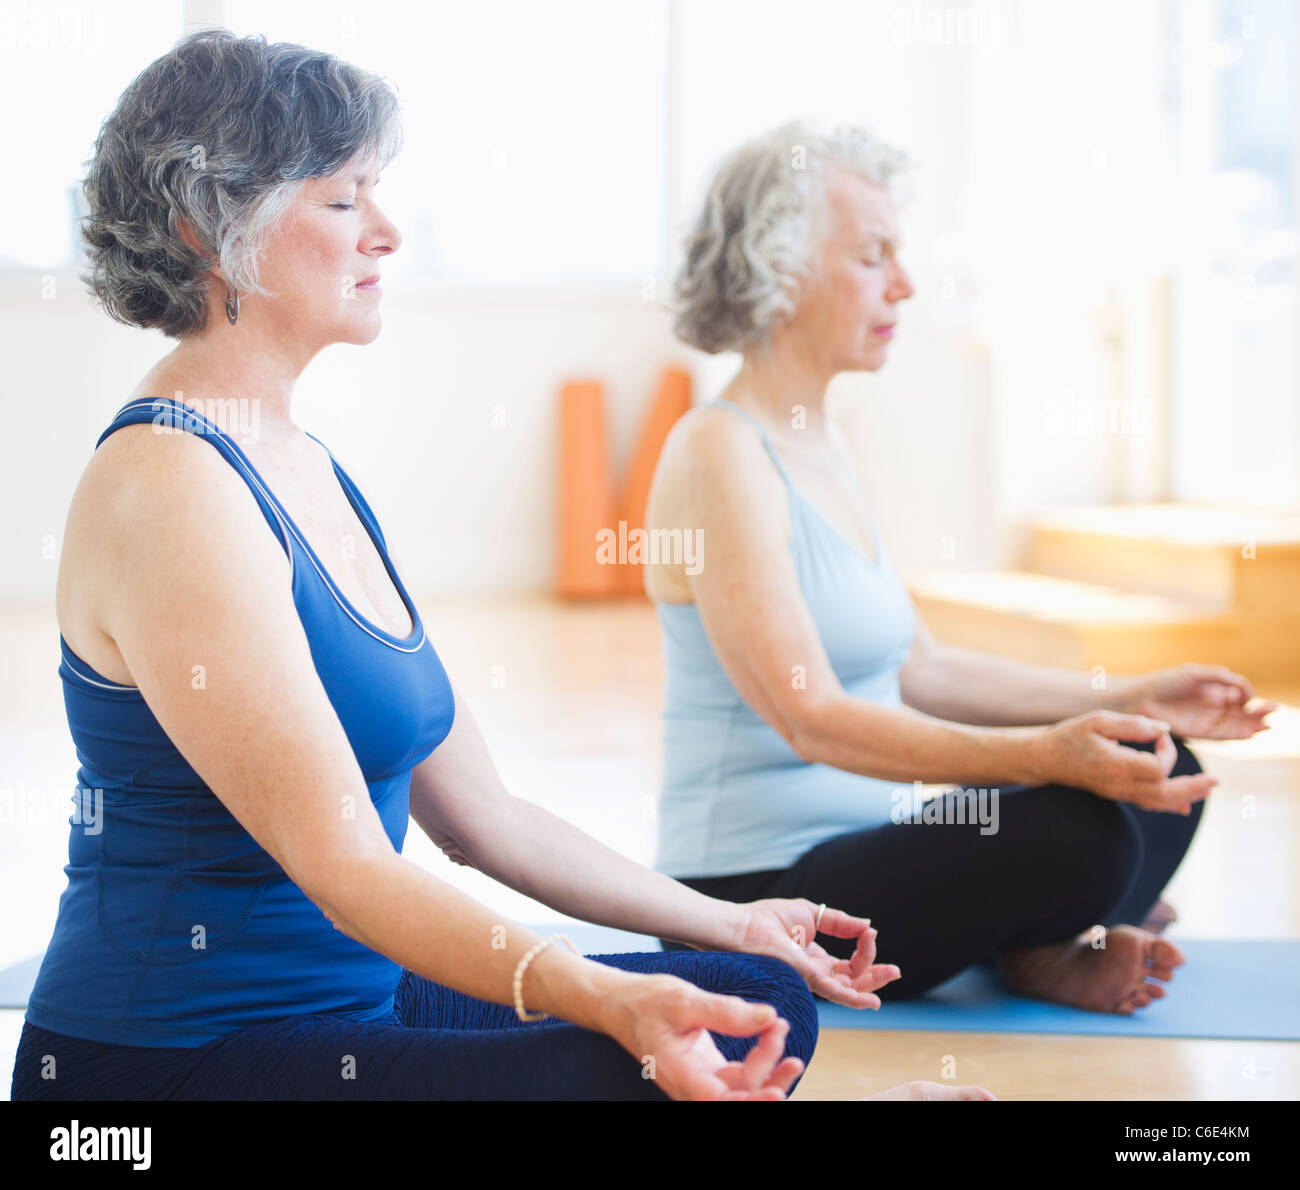 USA, New Jersey, Jersey City, Two senior women practicing yoga - Stock Image